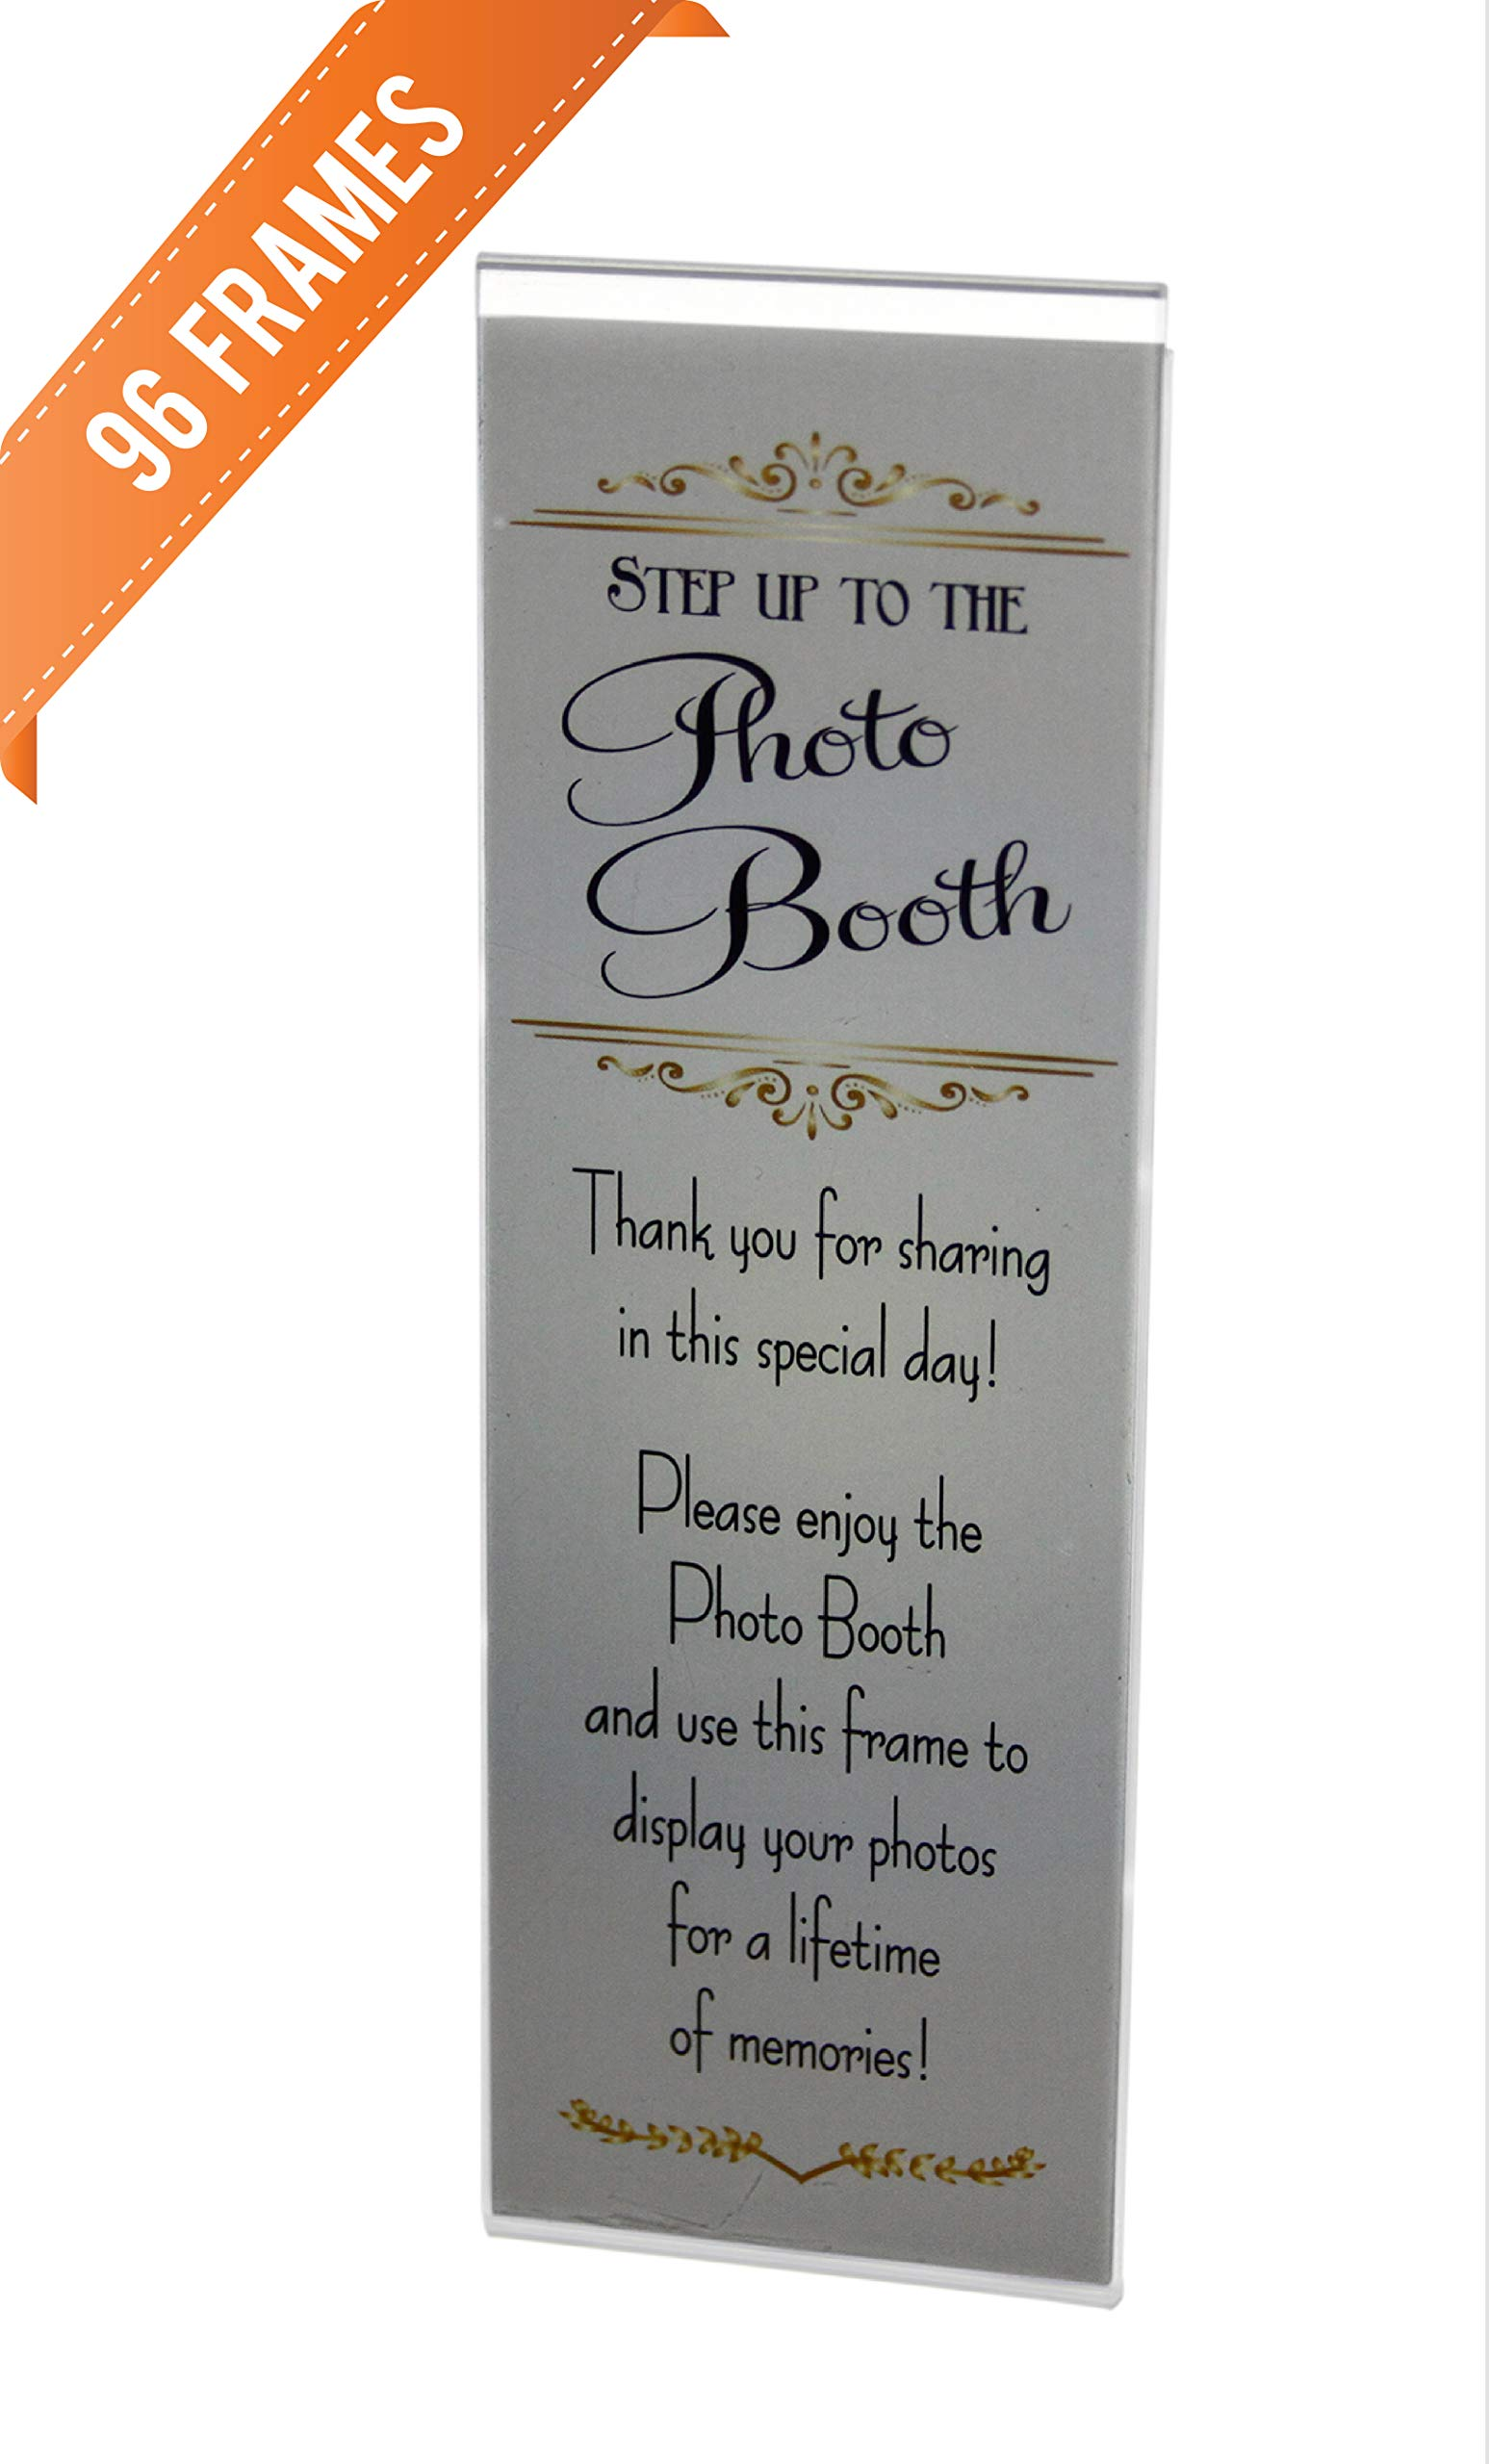 96 Acrylic Magnetic Photo Booth Frames with Inserts for 2x6 photo strips